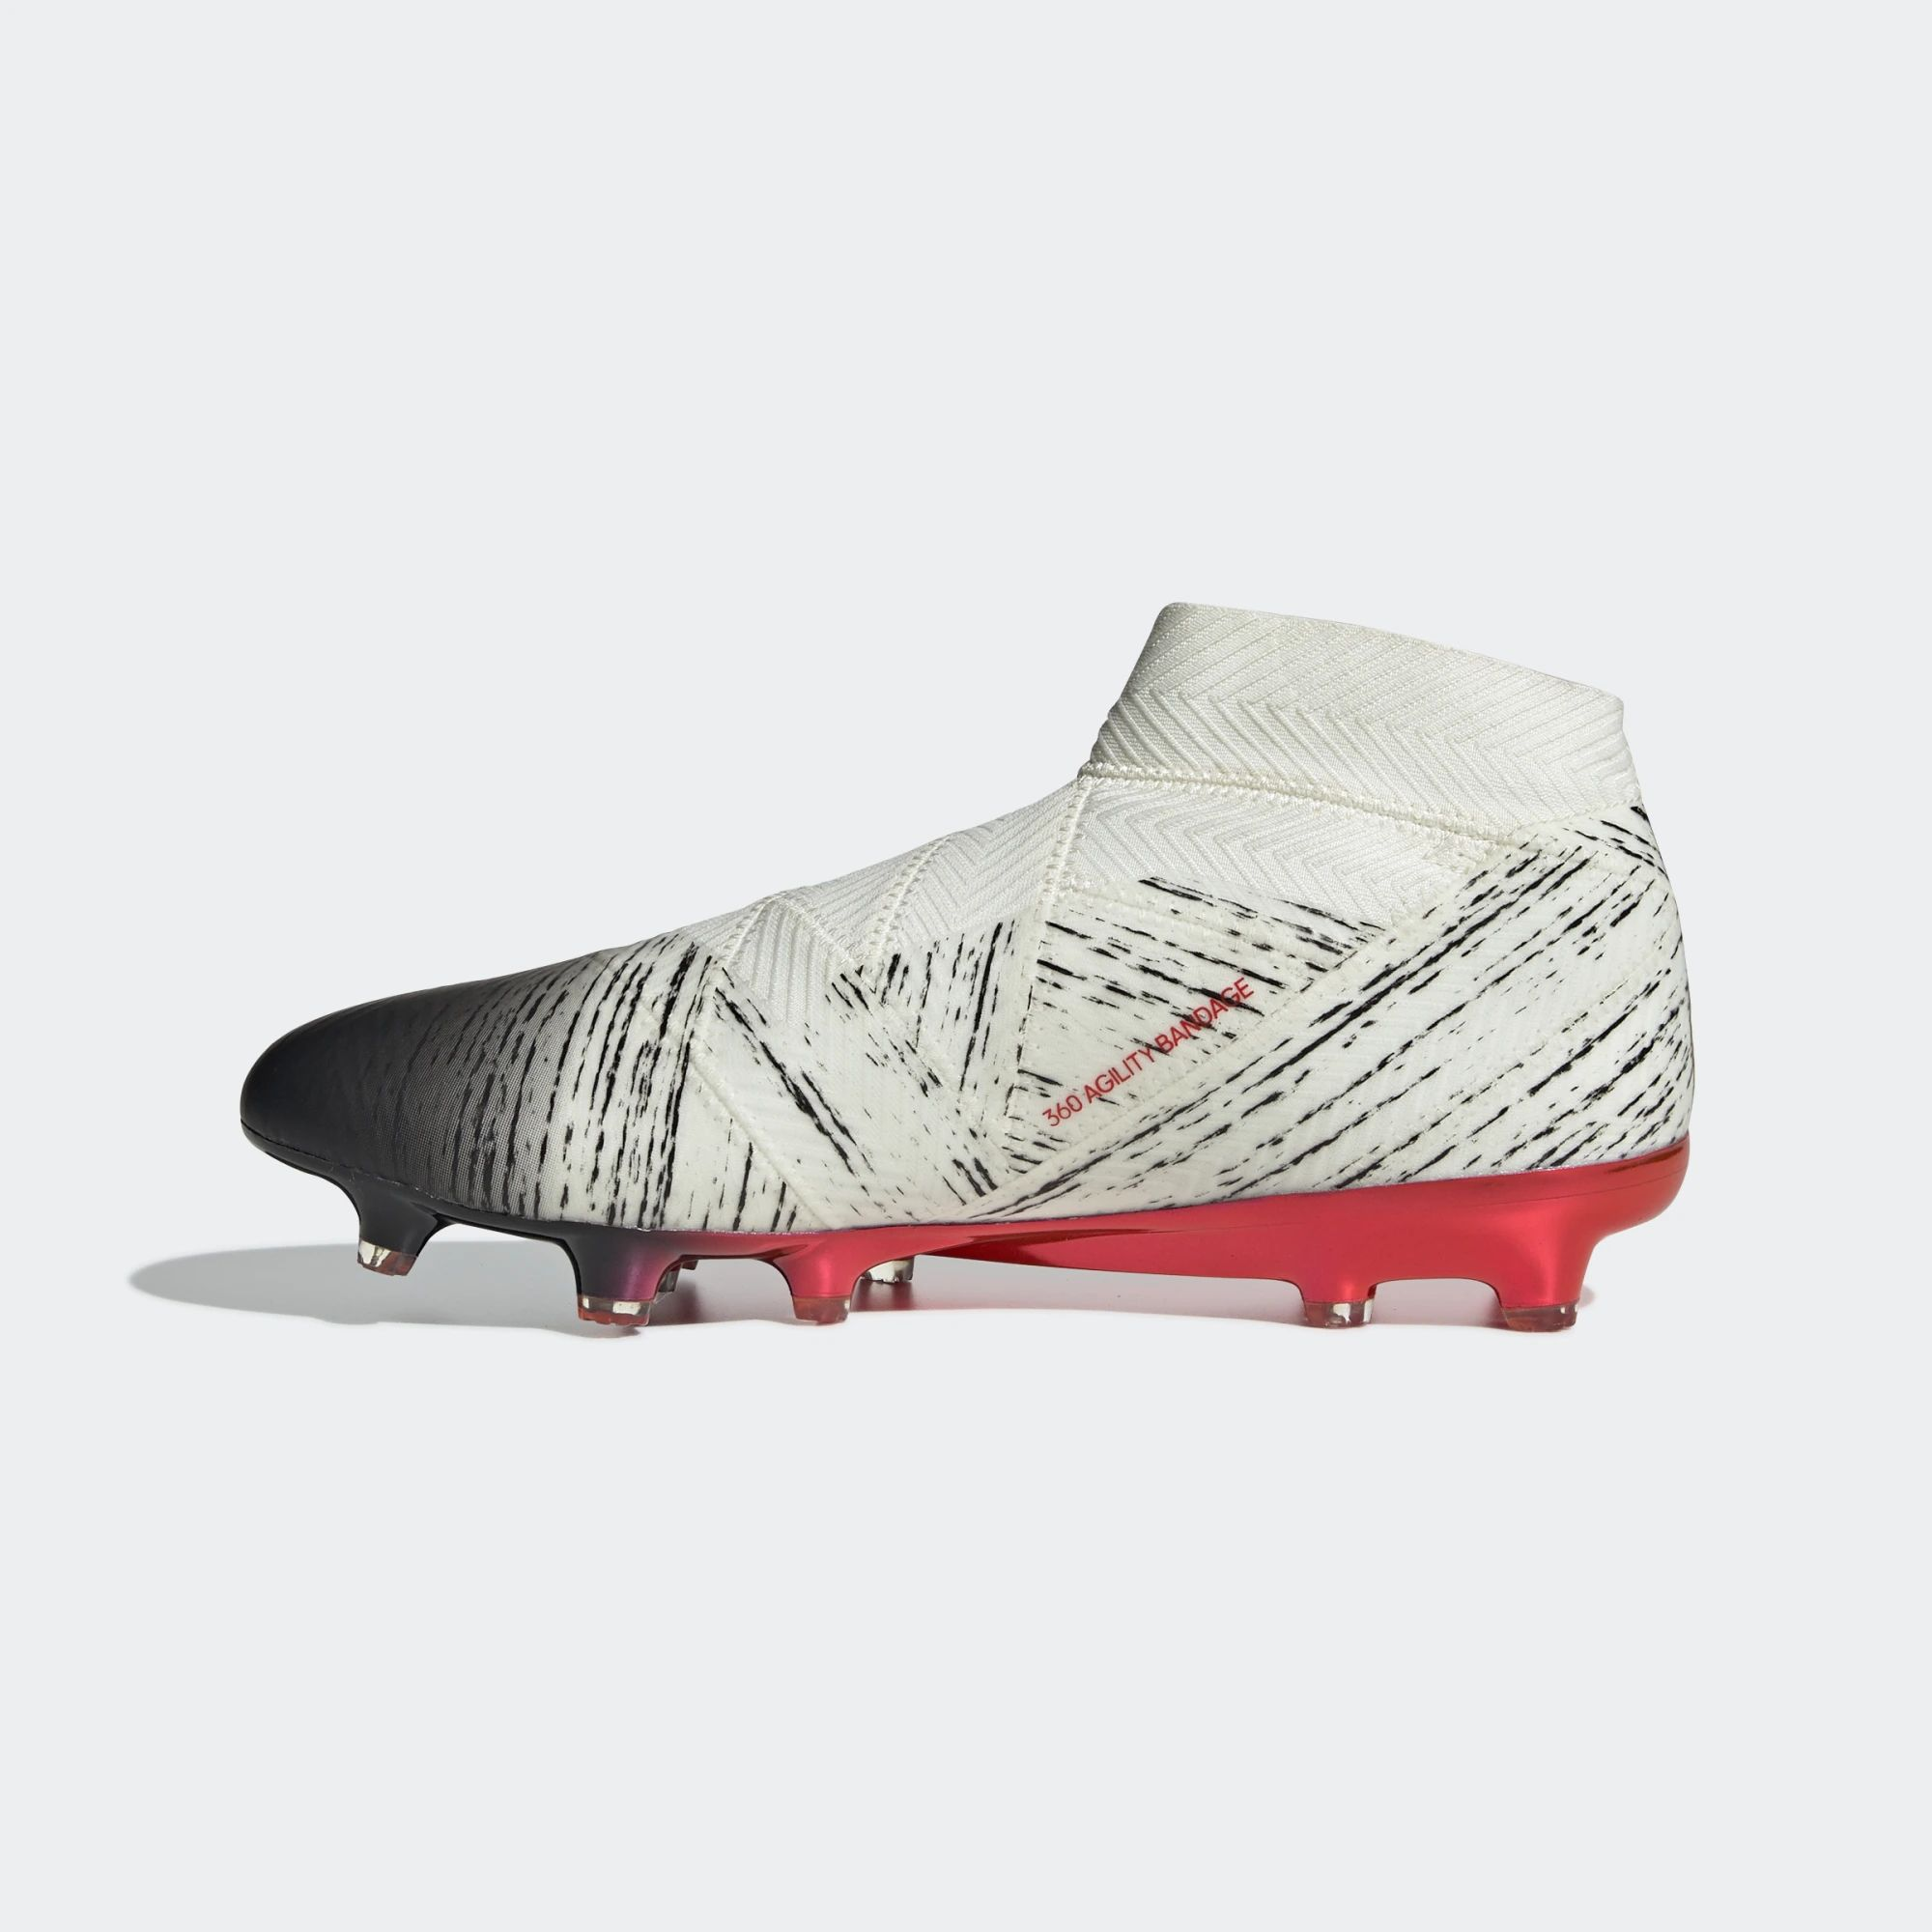 889fc0d78ce4 ... Click to enlarge image  adidas_nemeziz_18_firm_ground_boots_off_white_core_black_active_red_c.jpg  ...